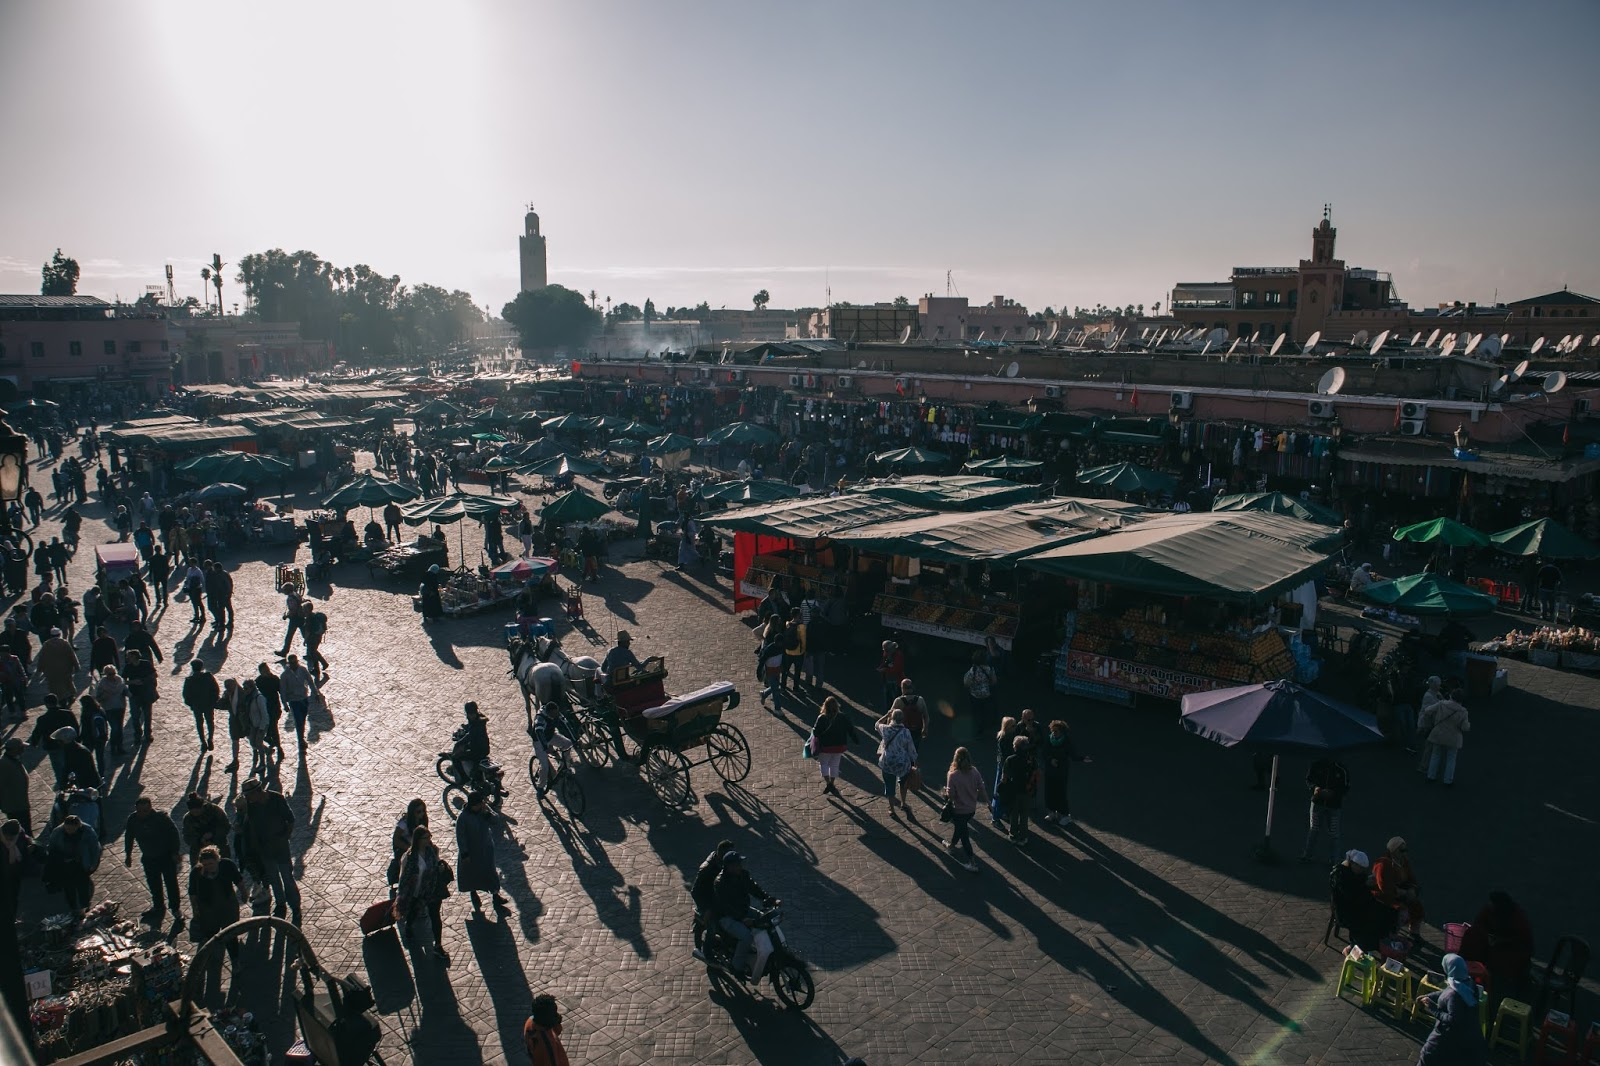 Suz and the Sun, Suz and the Sun travel, Marrakesh 2018, Marrakesh travel, Suz and the Sun style, Jemaa El-Fnaa square, Jemaa El-Fnaa Square sunset